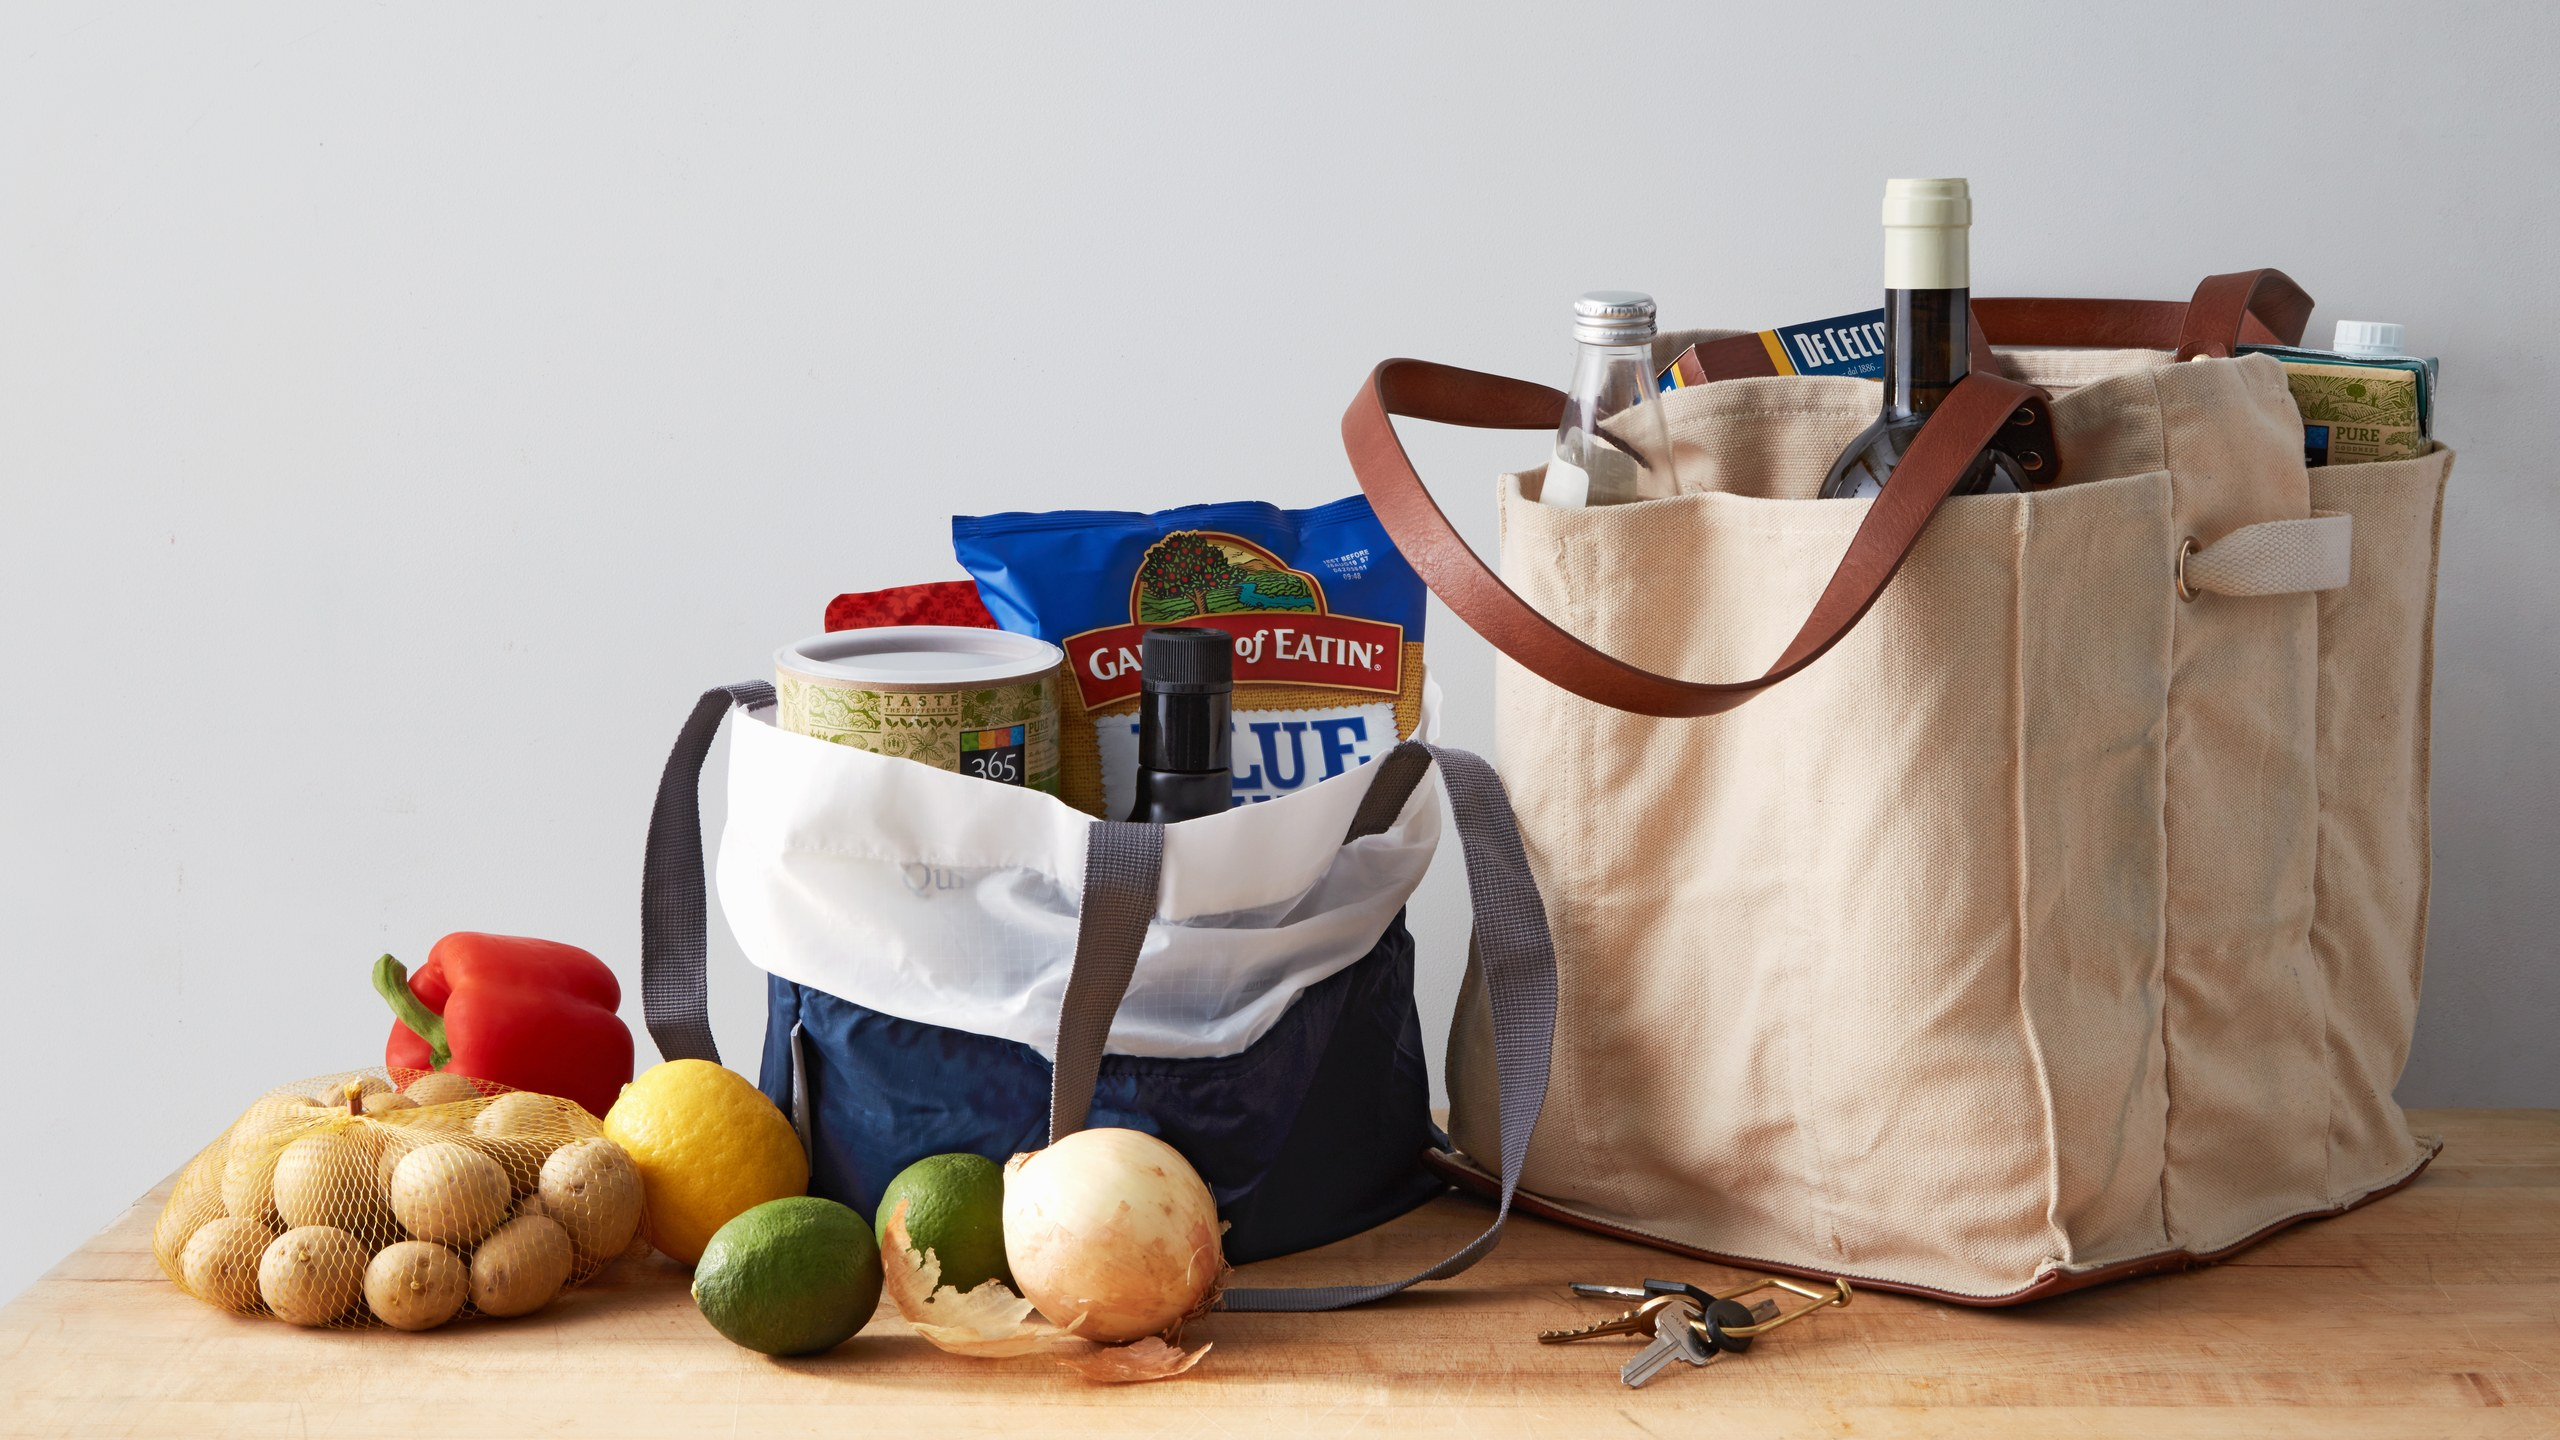 A Note on the Common Material Used to Make Recycled Bags